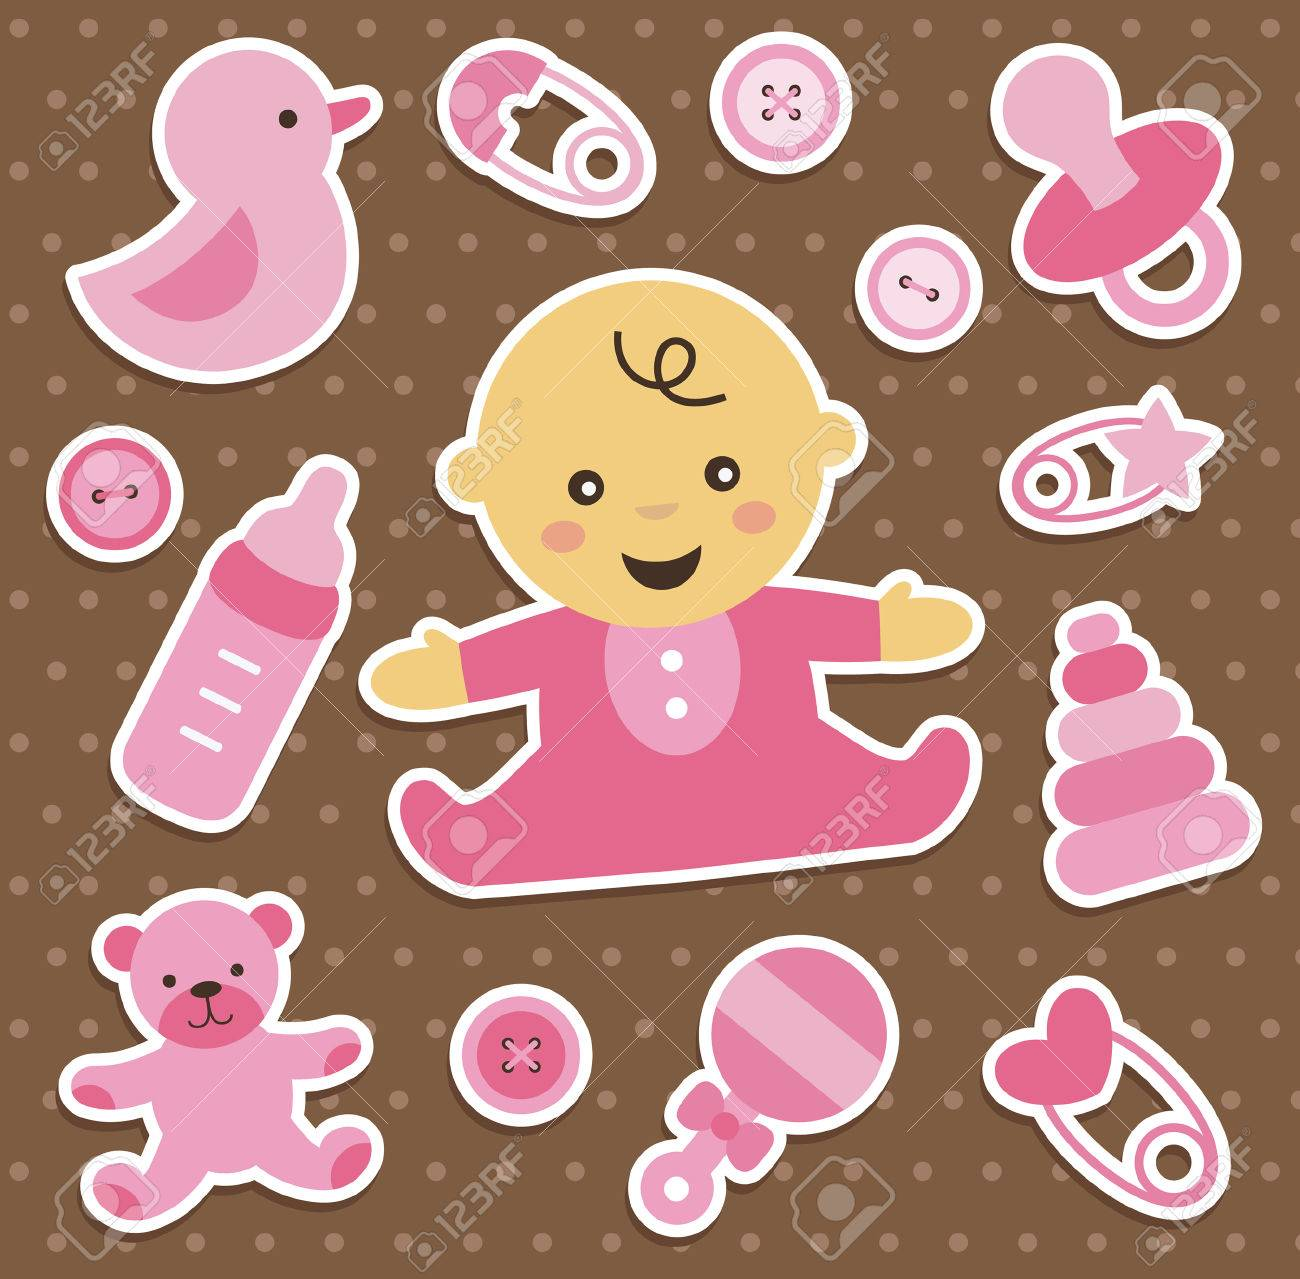 Baby Girl Stickers Collection Vector Illustration